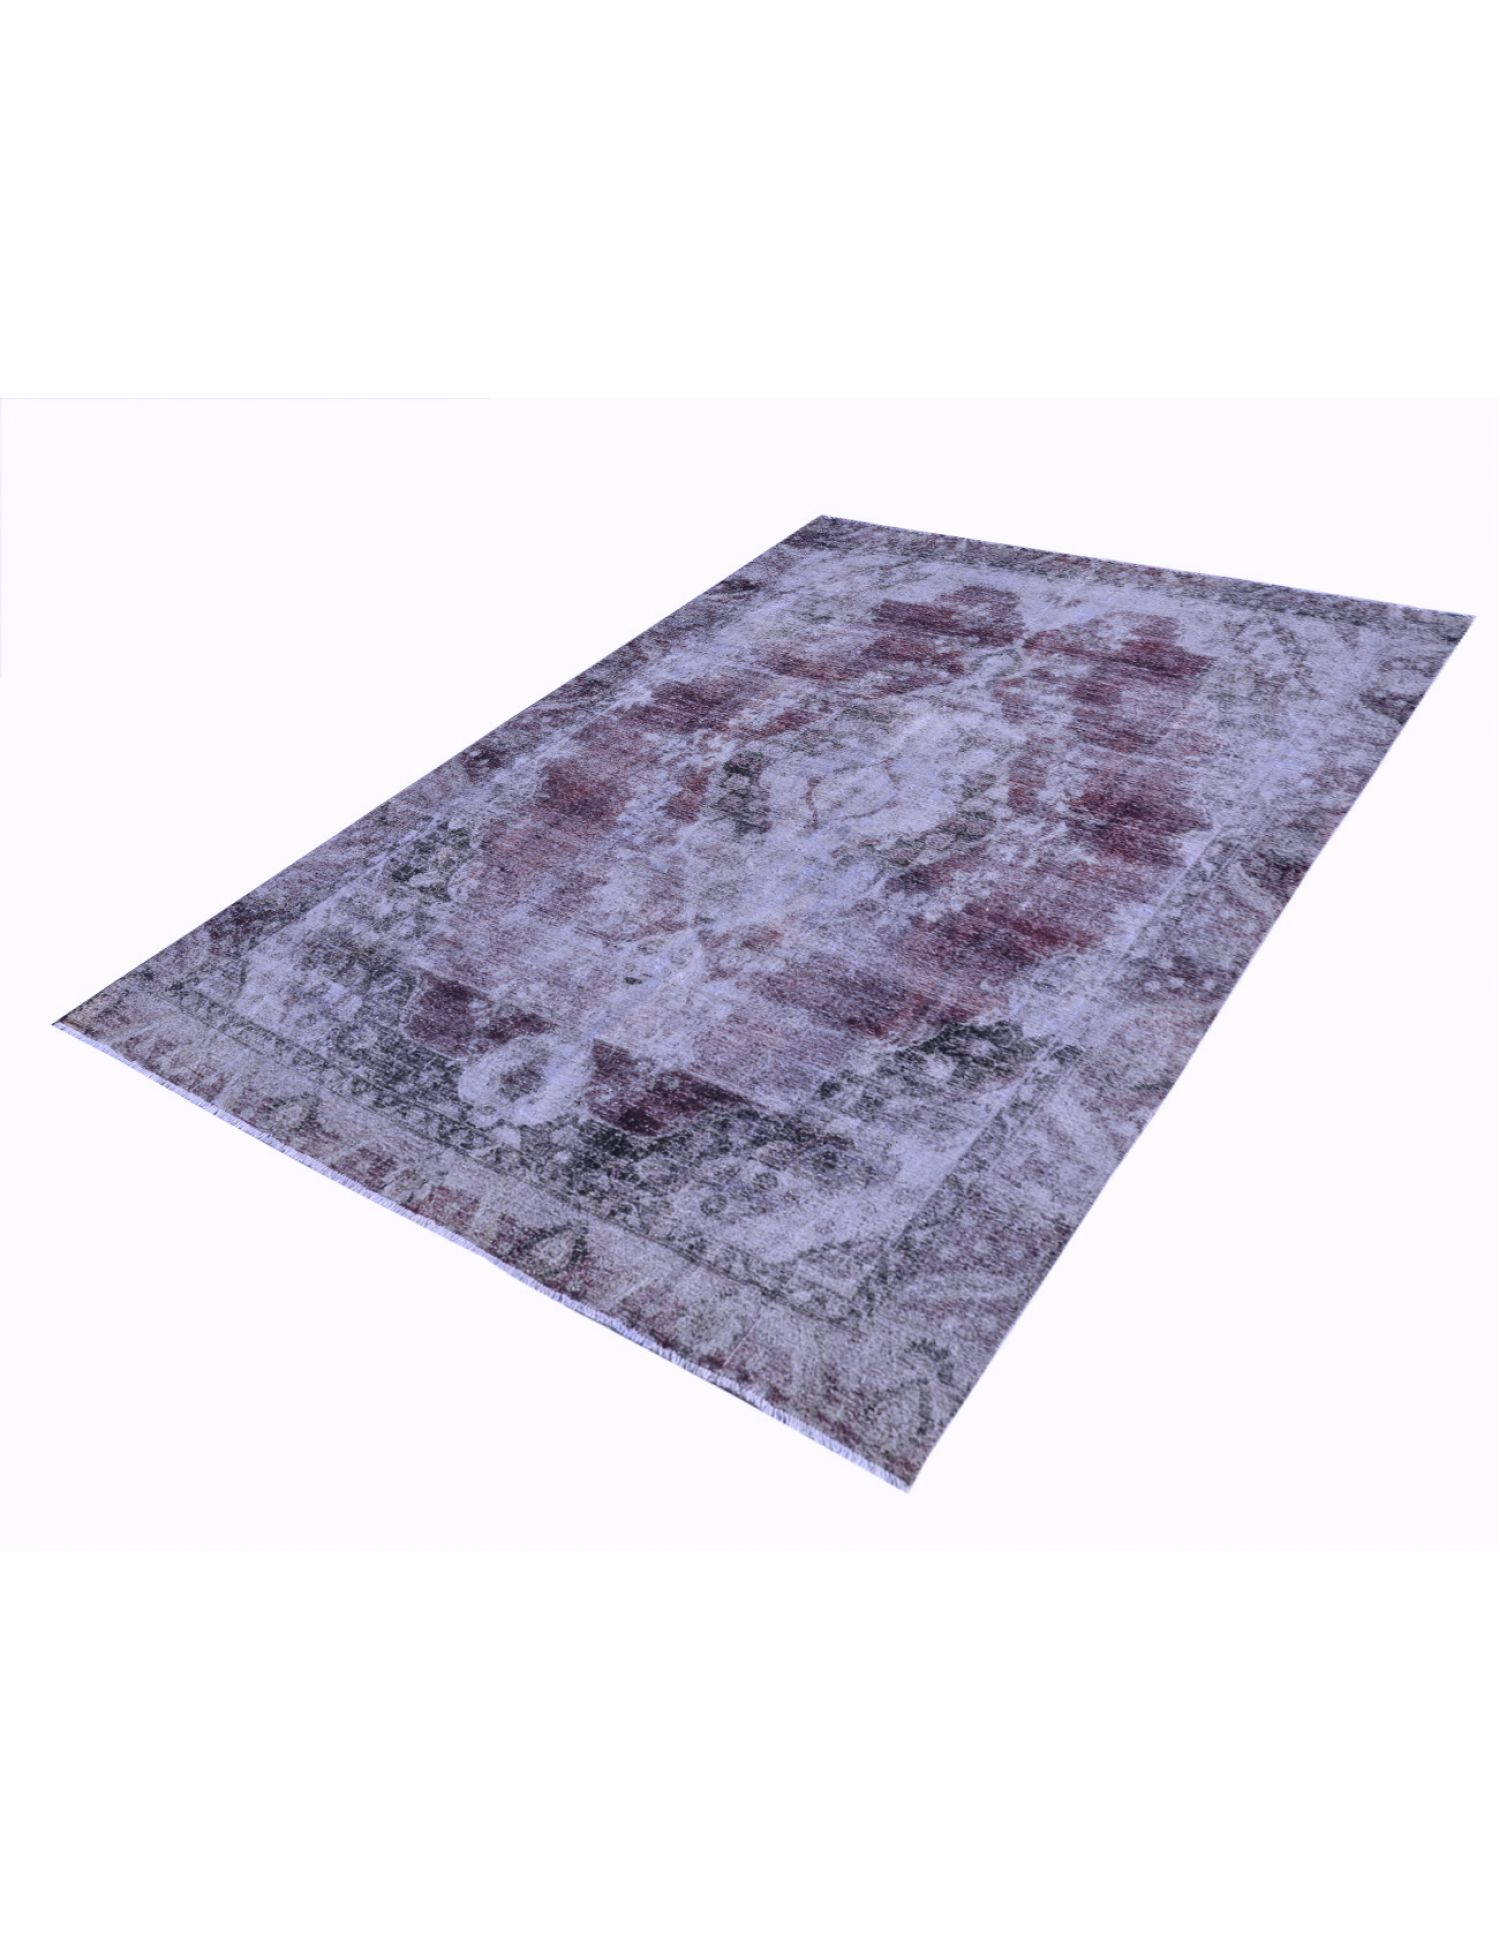 Vintage Carpet  purple <br/>346 x 270 cm